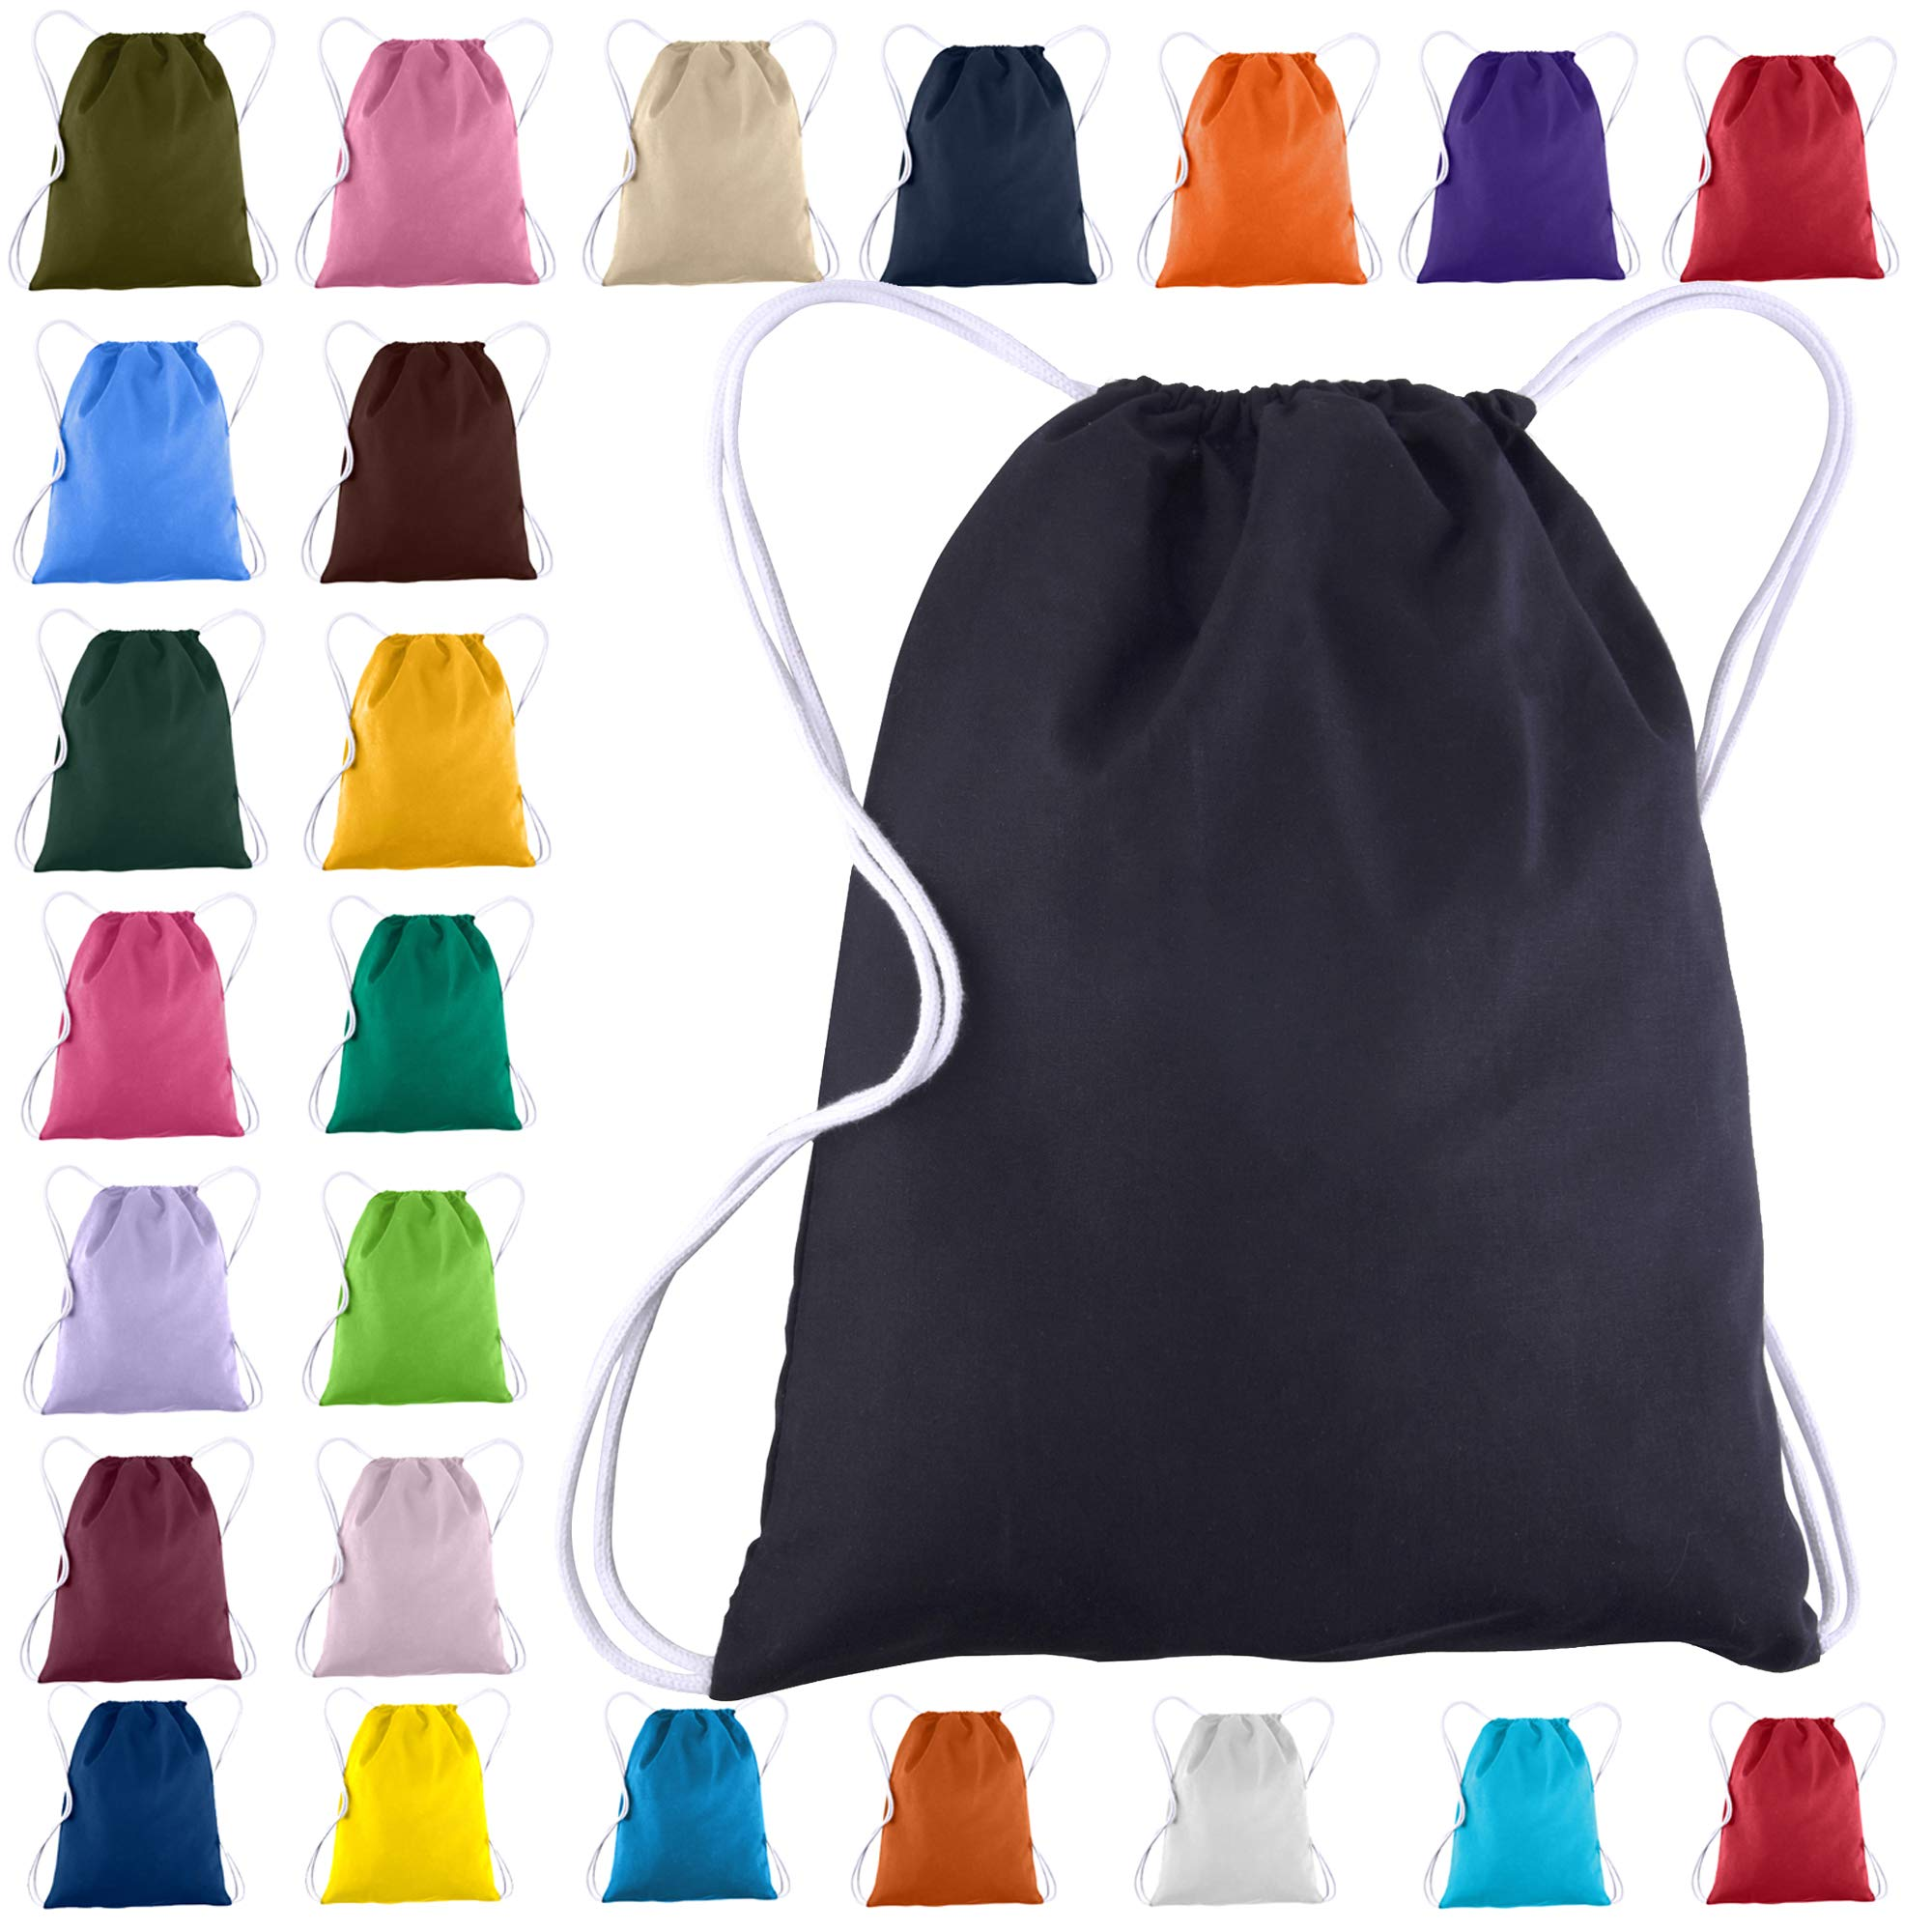 Cotton Canvas Drawstring Backpacks Bags - 12 Pack - Bulk Pack, Promotional Sport Gym Sack Cinch Bags